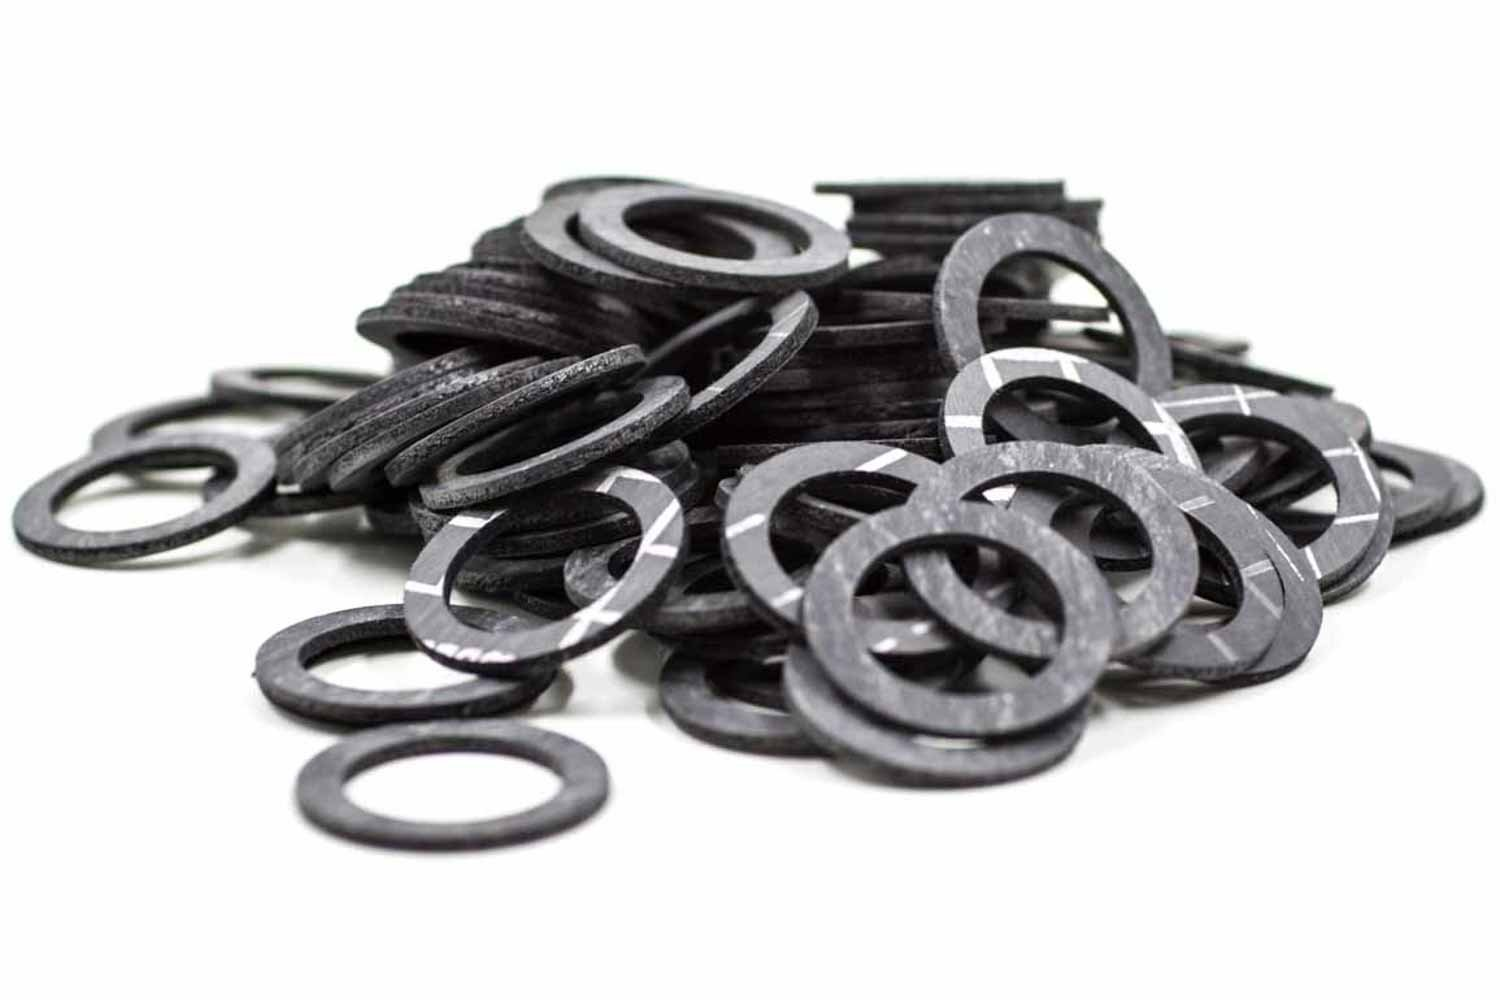 Flat Gasket Type 370 Based on Kevlar/® 24 x 18 x 2 mm up to 370 /°C Aramid Fiber 100 Pieces 3//4 Normal